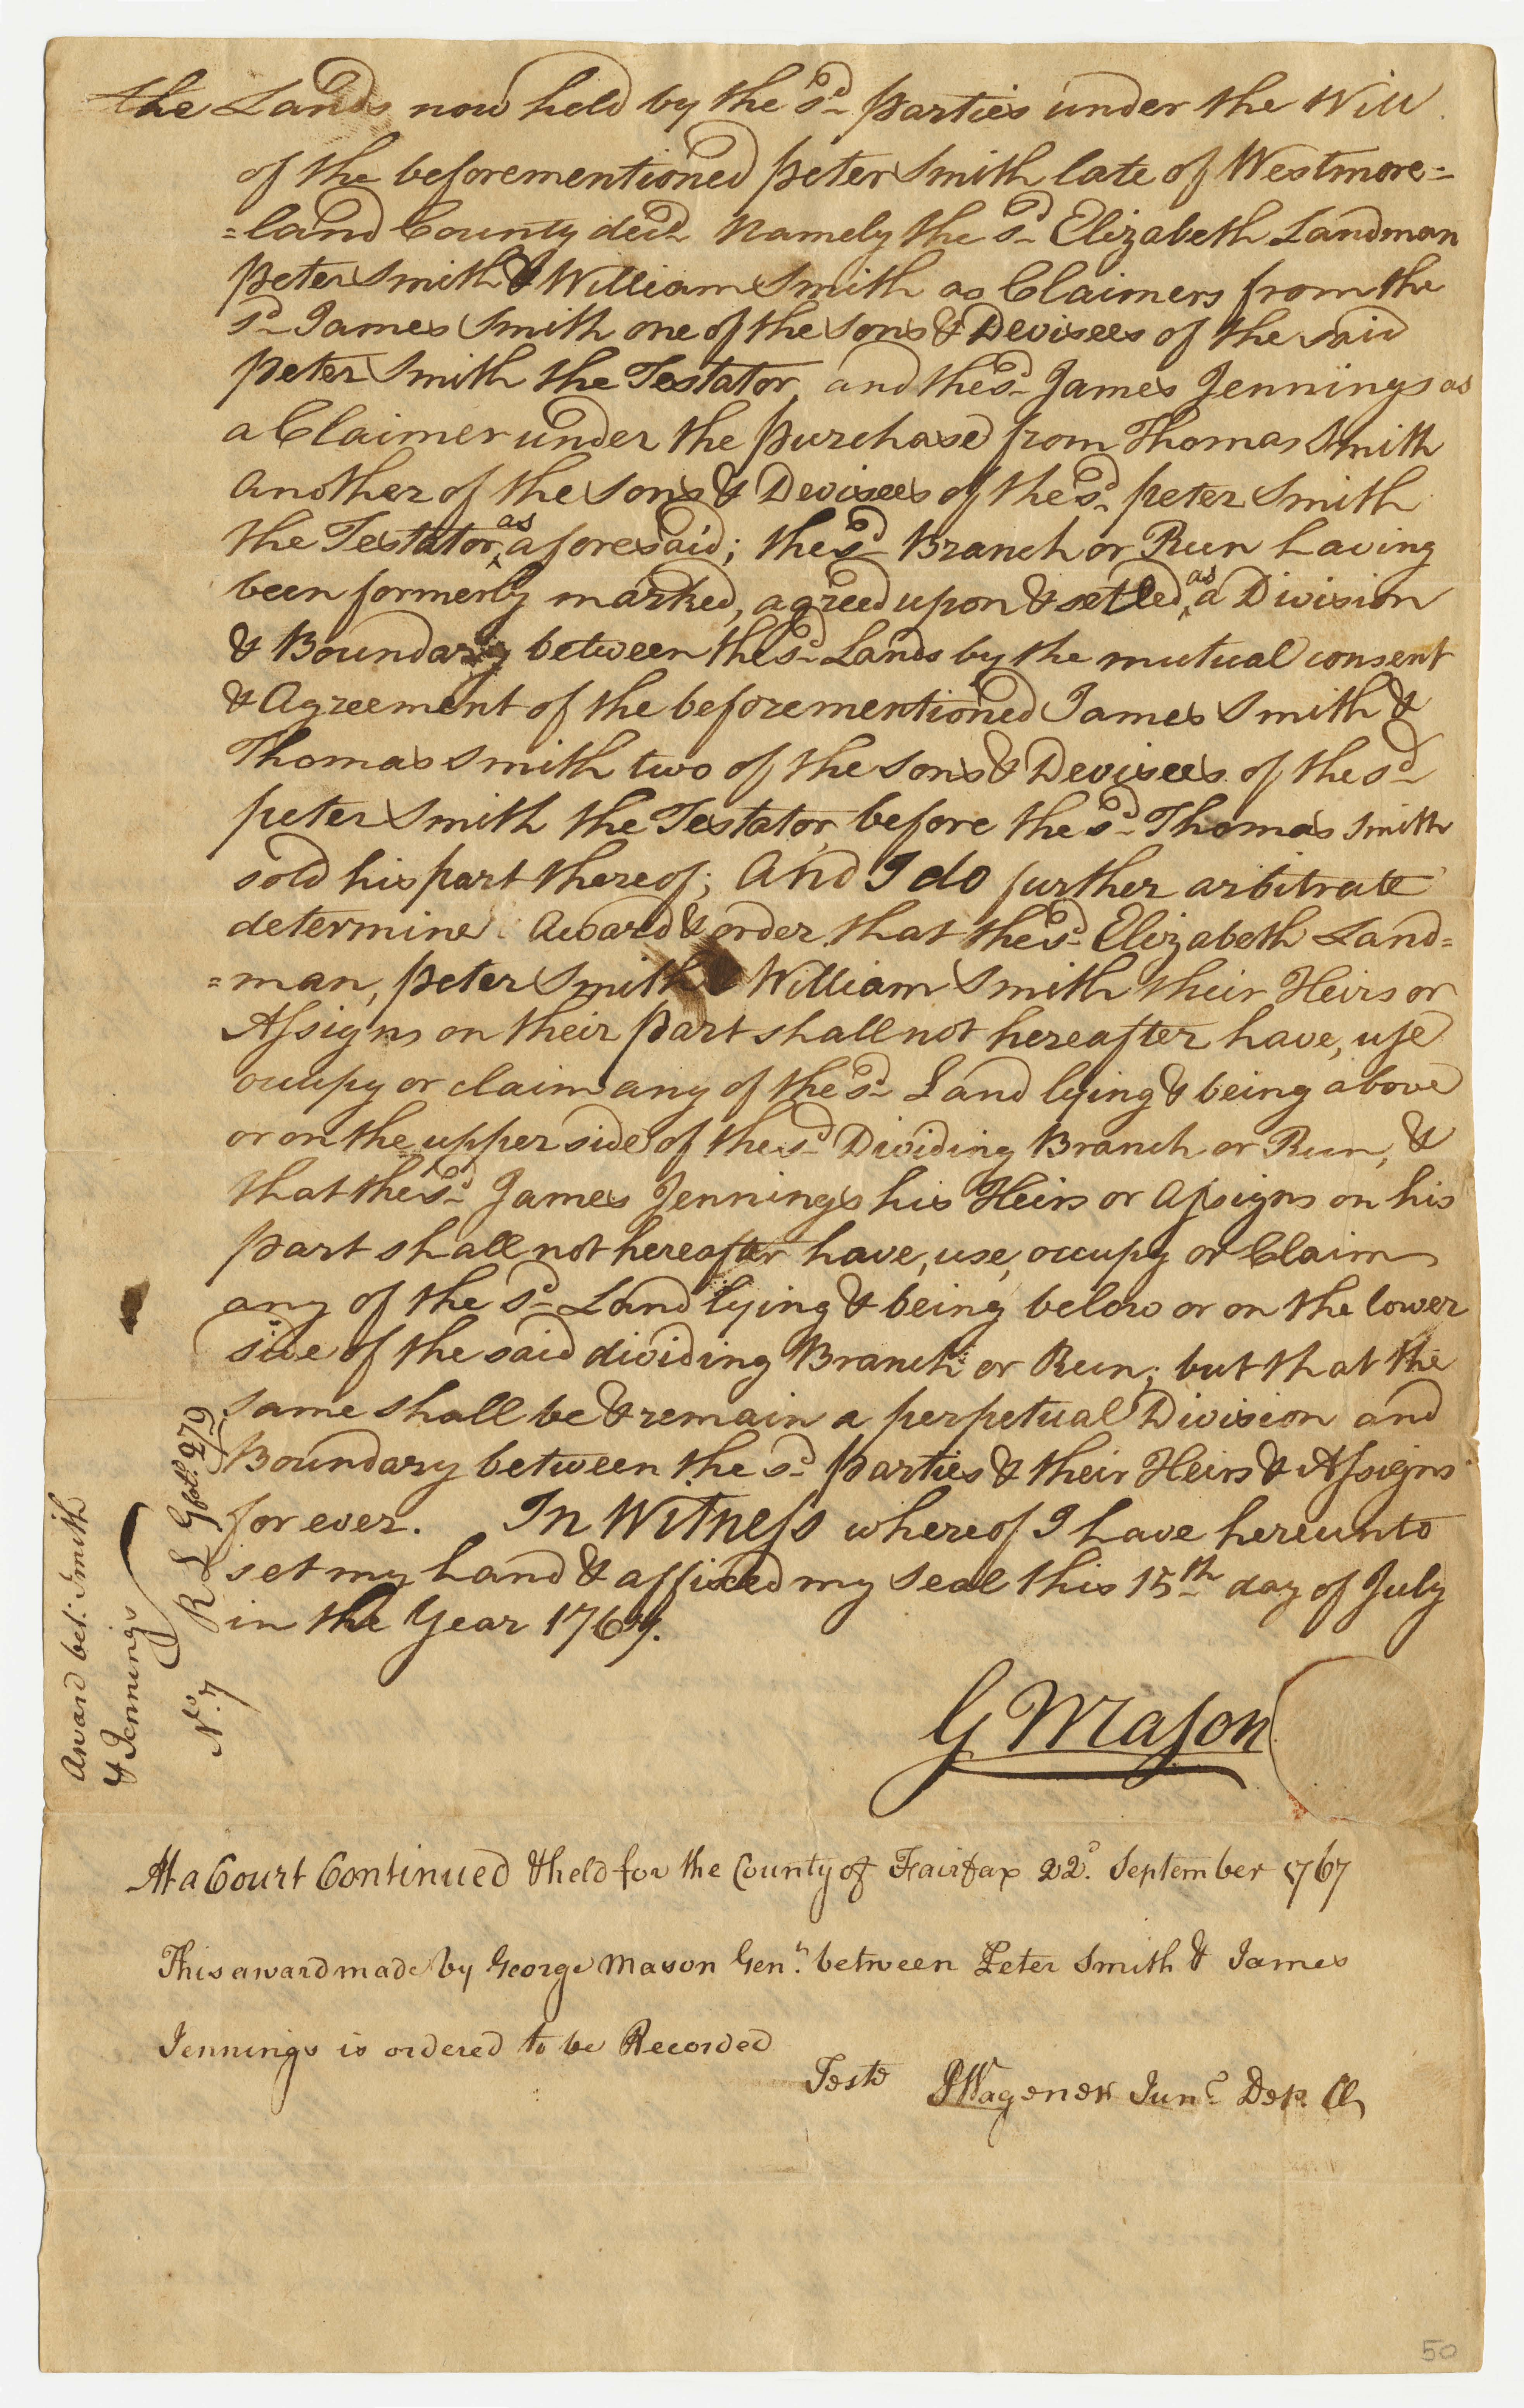 George Mason order, page 2.